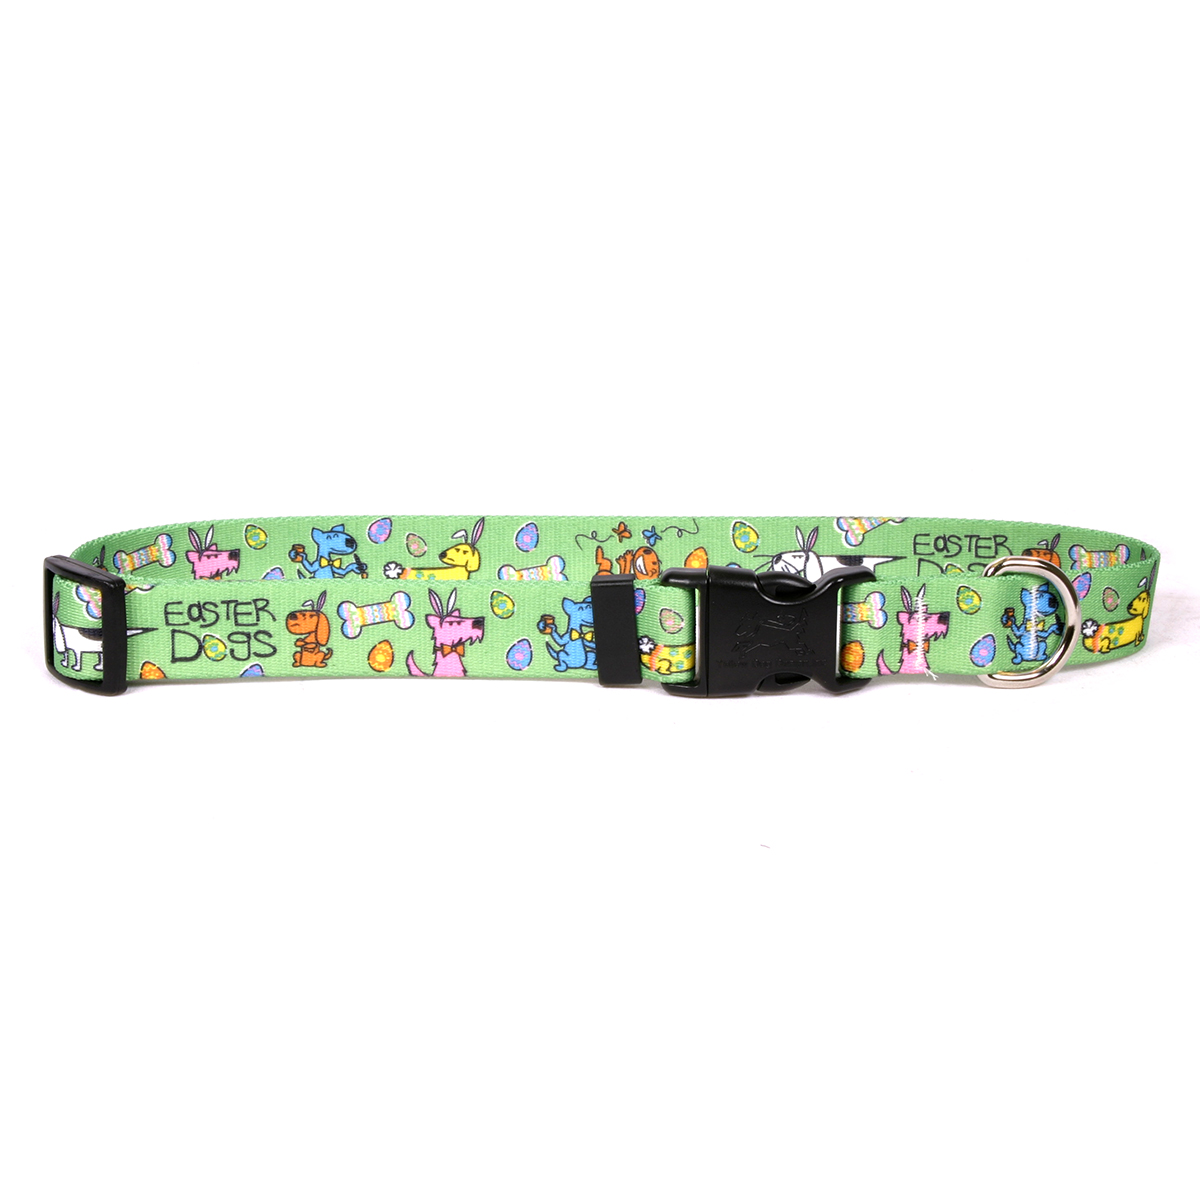 Easter Dogs Standard Collar